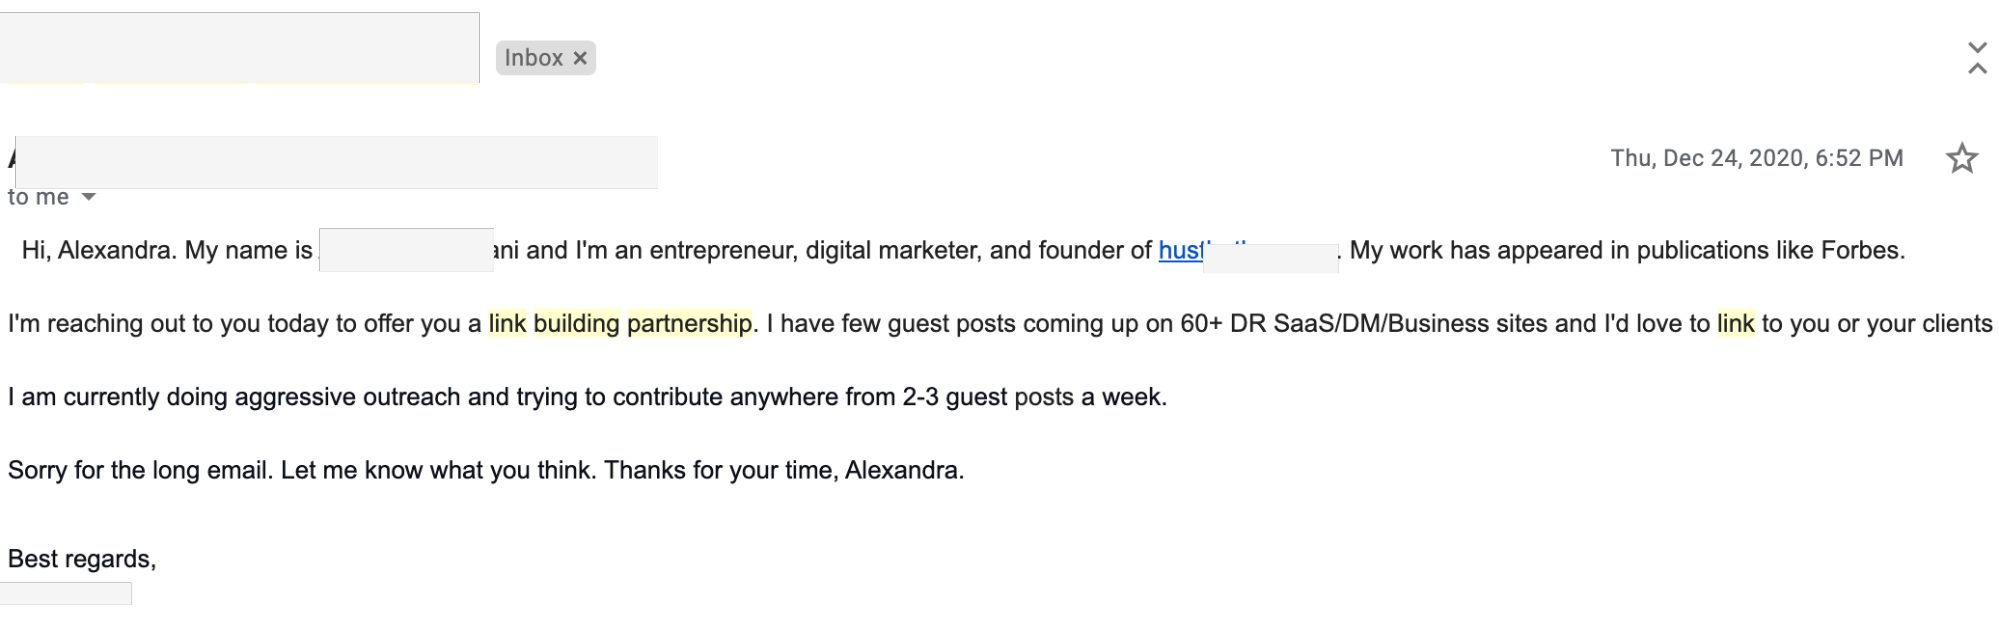 example of outreach email